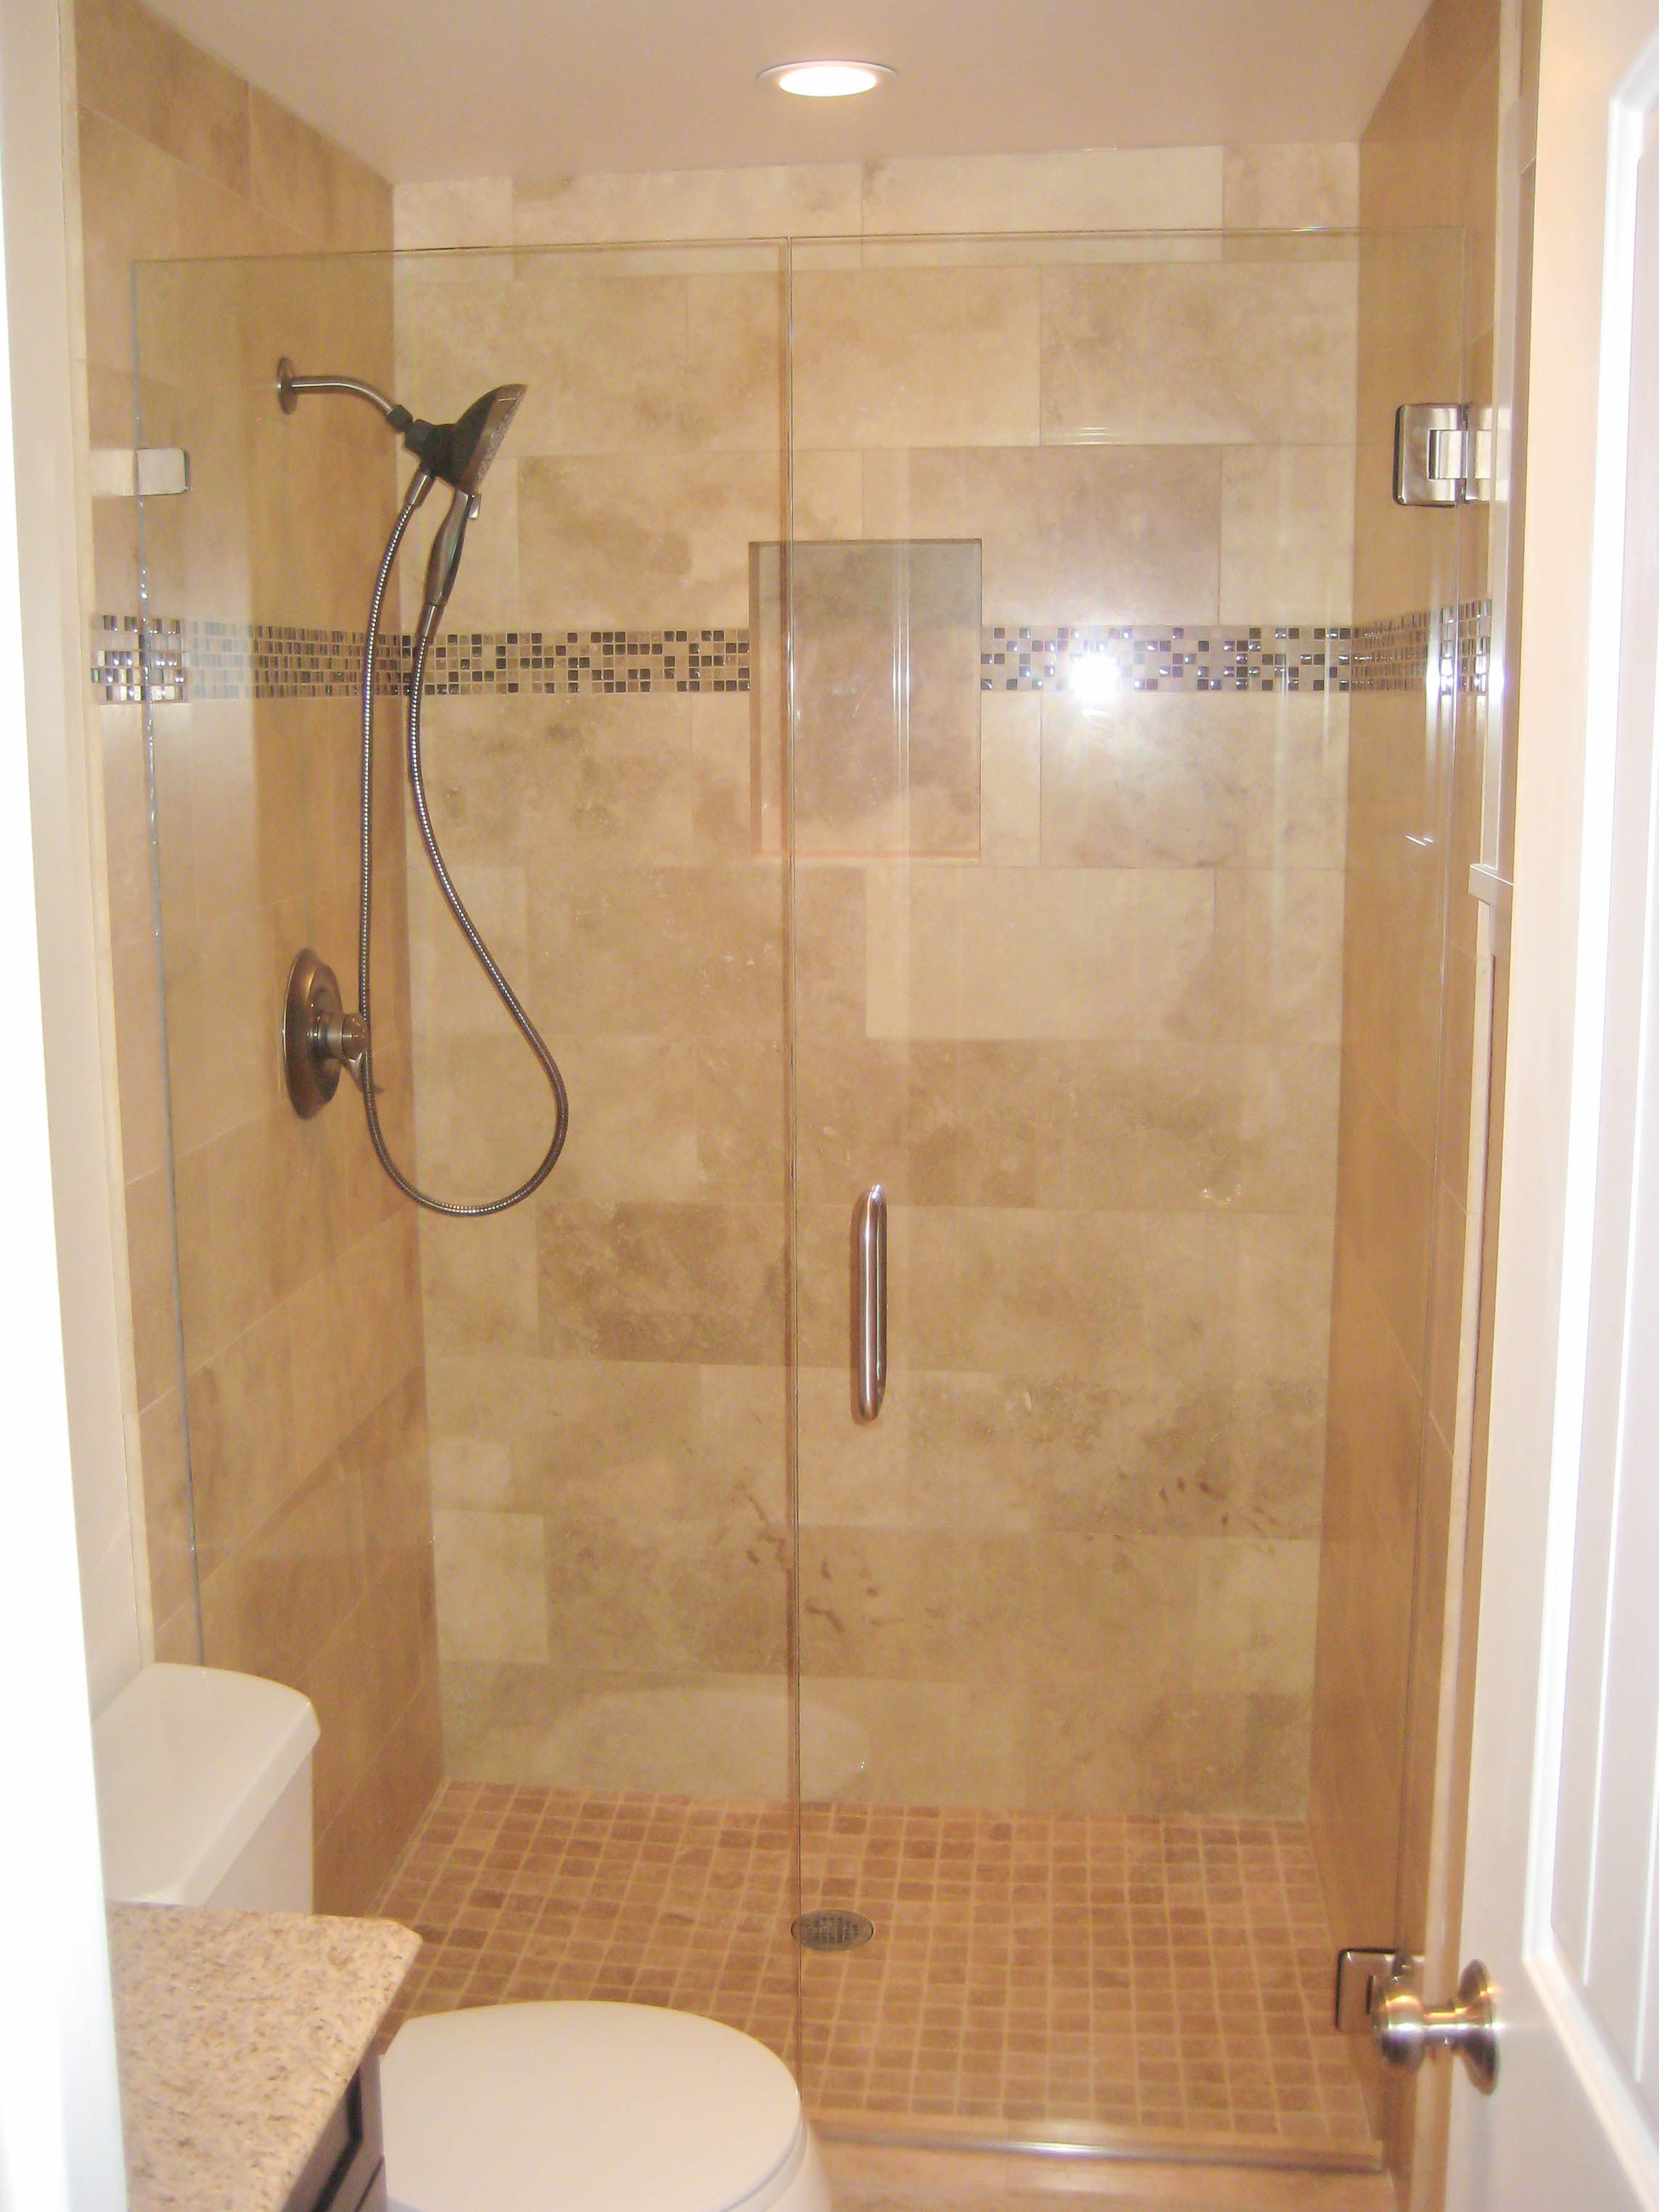 Bathroom showers photos seattle tile contractor irc for Bathroom shower ideas